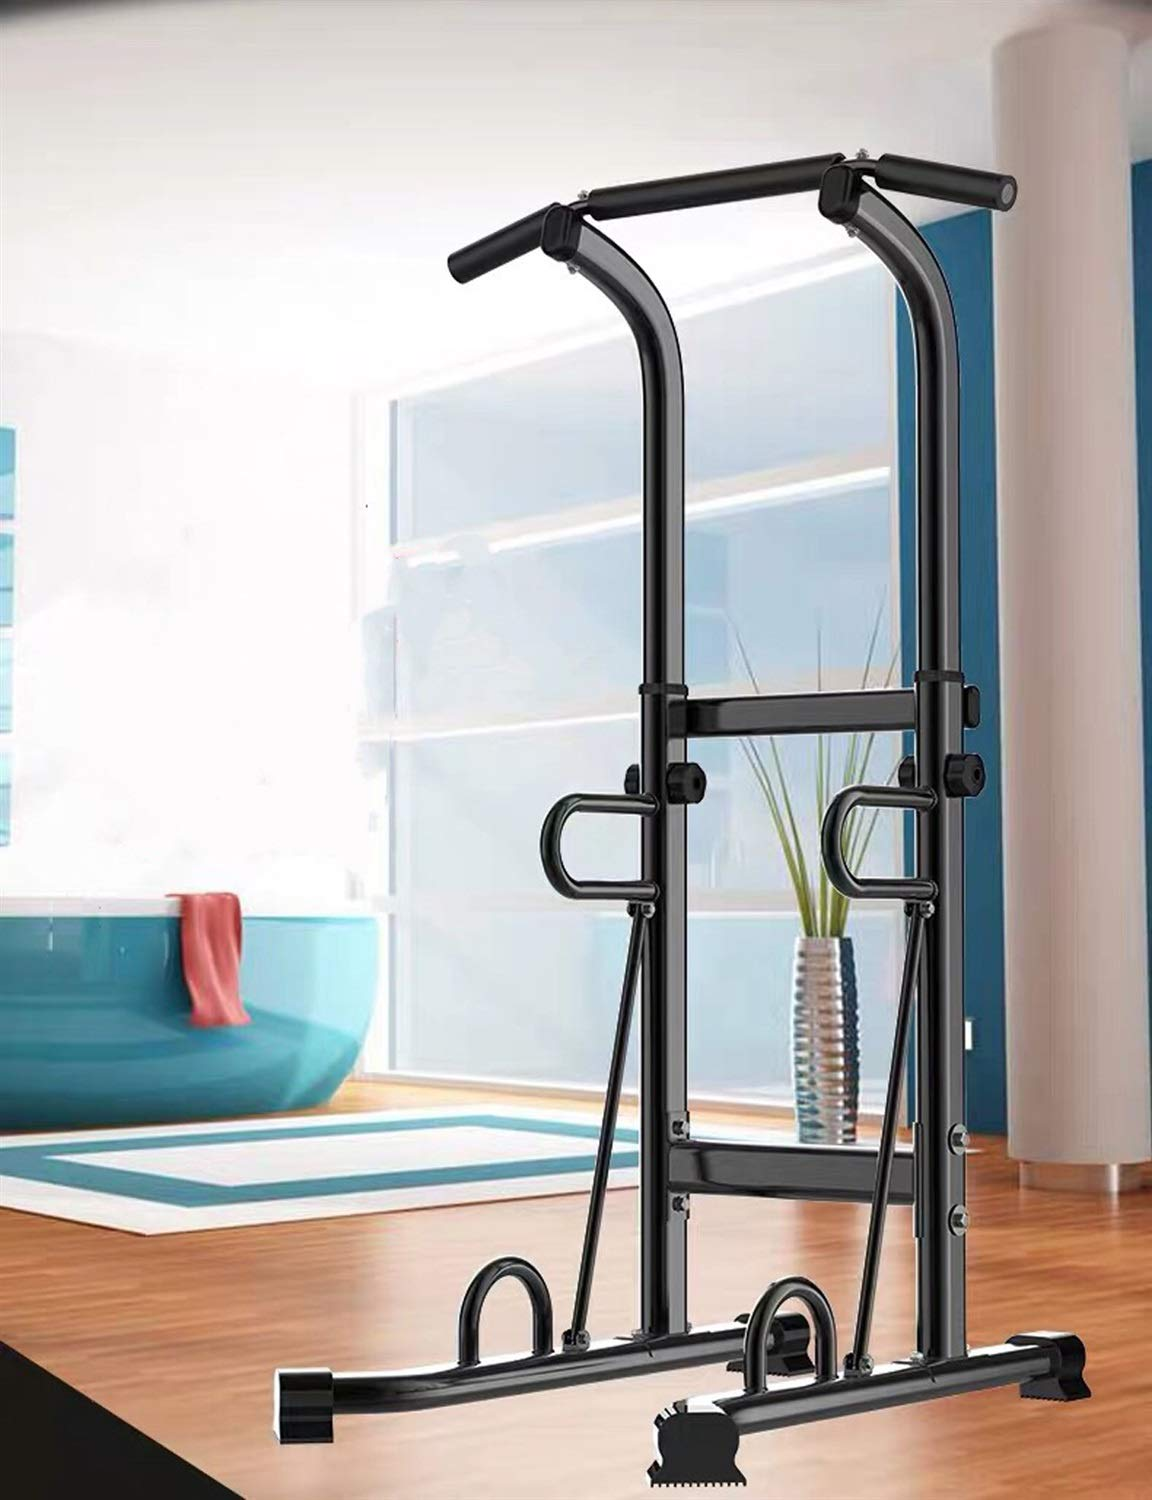 Home Horizontal Bar Home Indoor Pull-ups Fitness Equipment Double-bar Sports Equipment Family Stretching Boom by Baianju